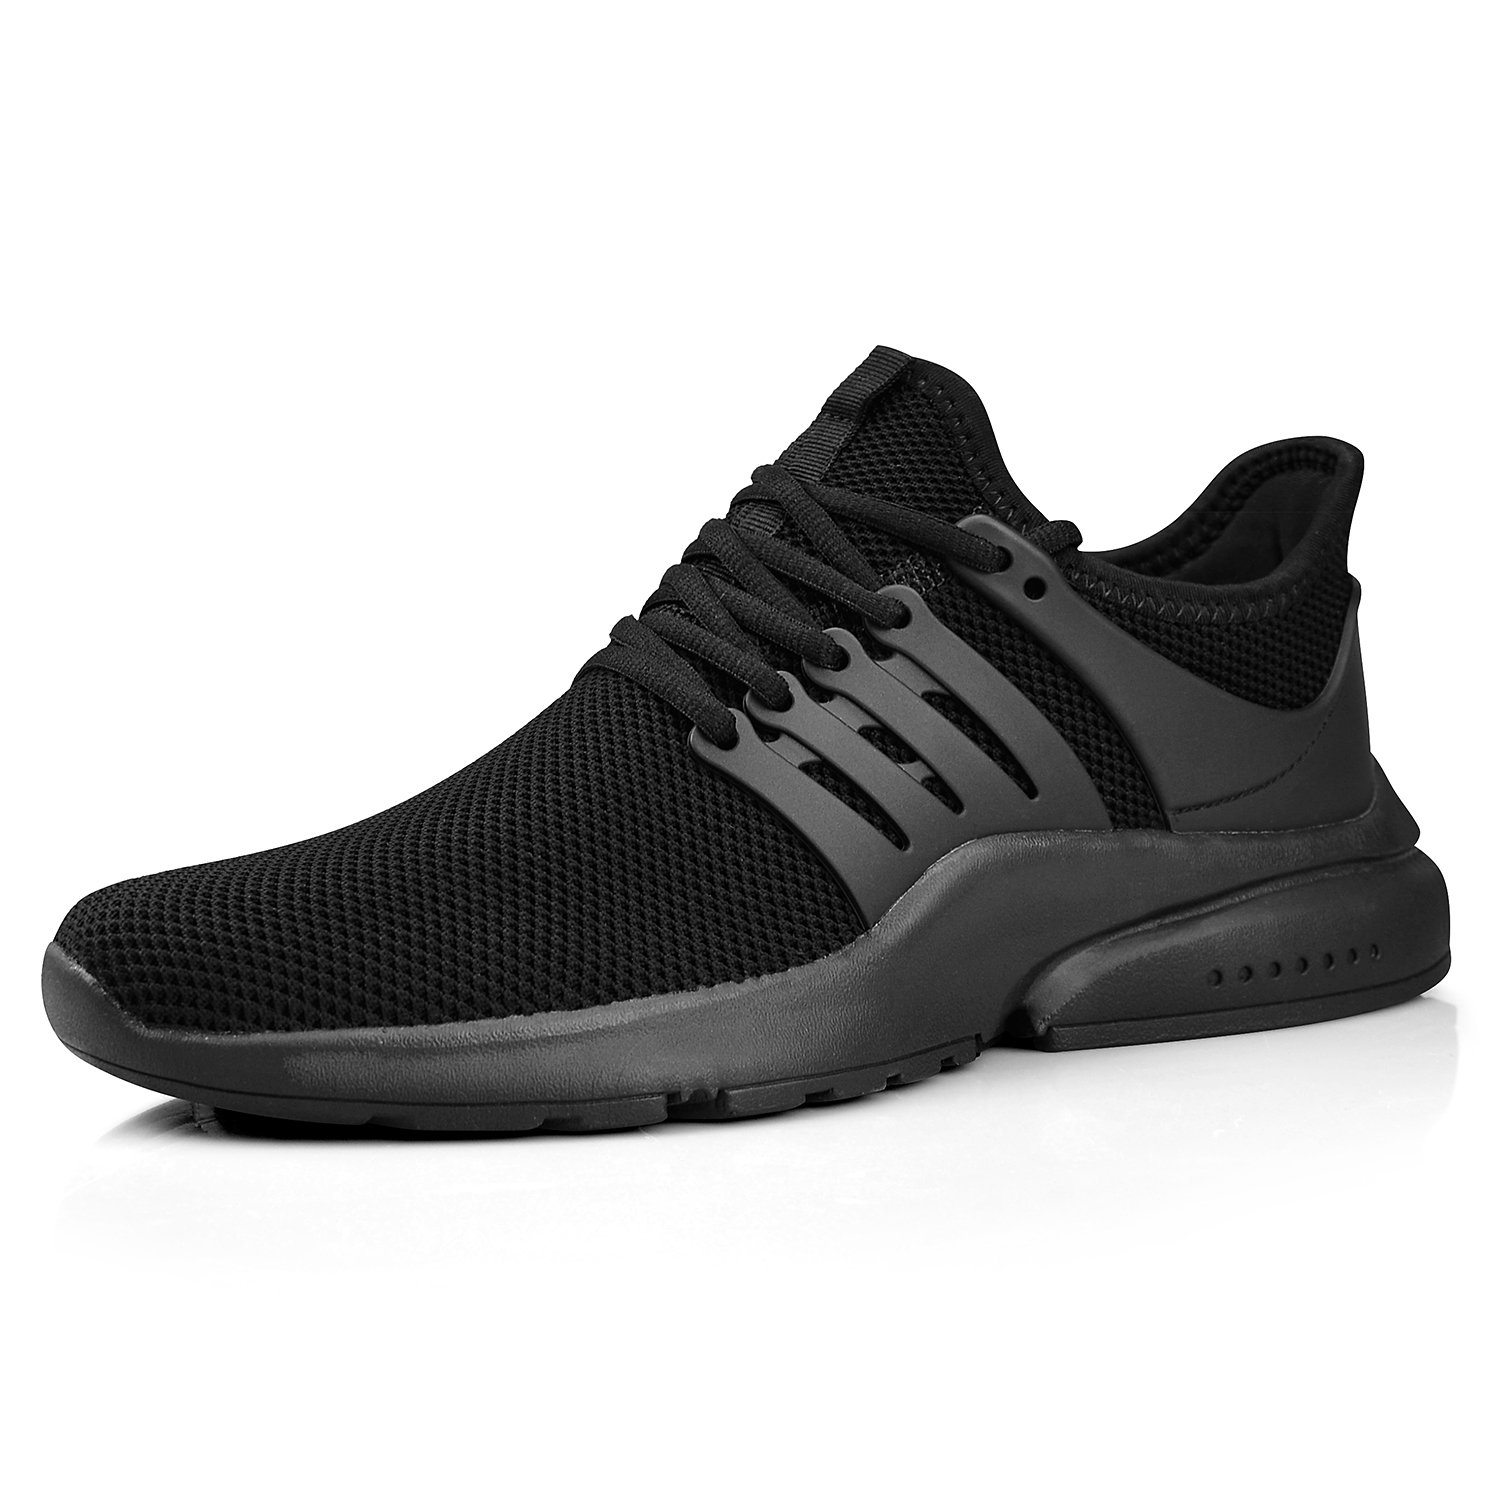 ZOCAVIA Womens Running Tennis Gym Shoes Lightweight Breathable Sport Fashion Knit Athletic Casual Sneakers(Black,Size 8)